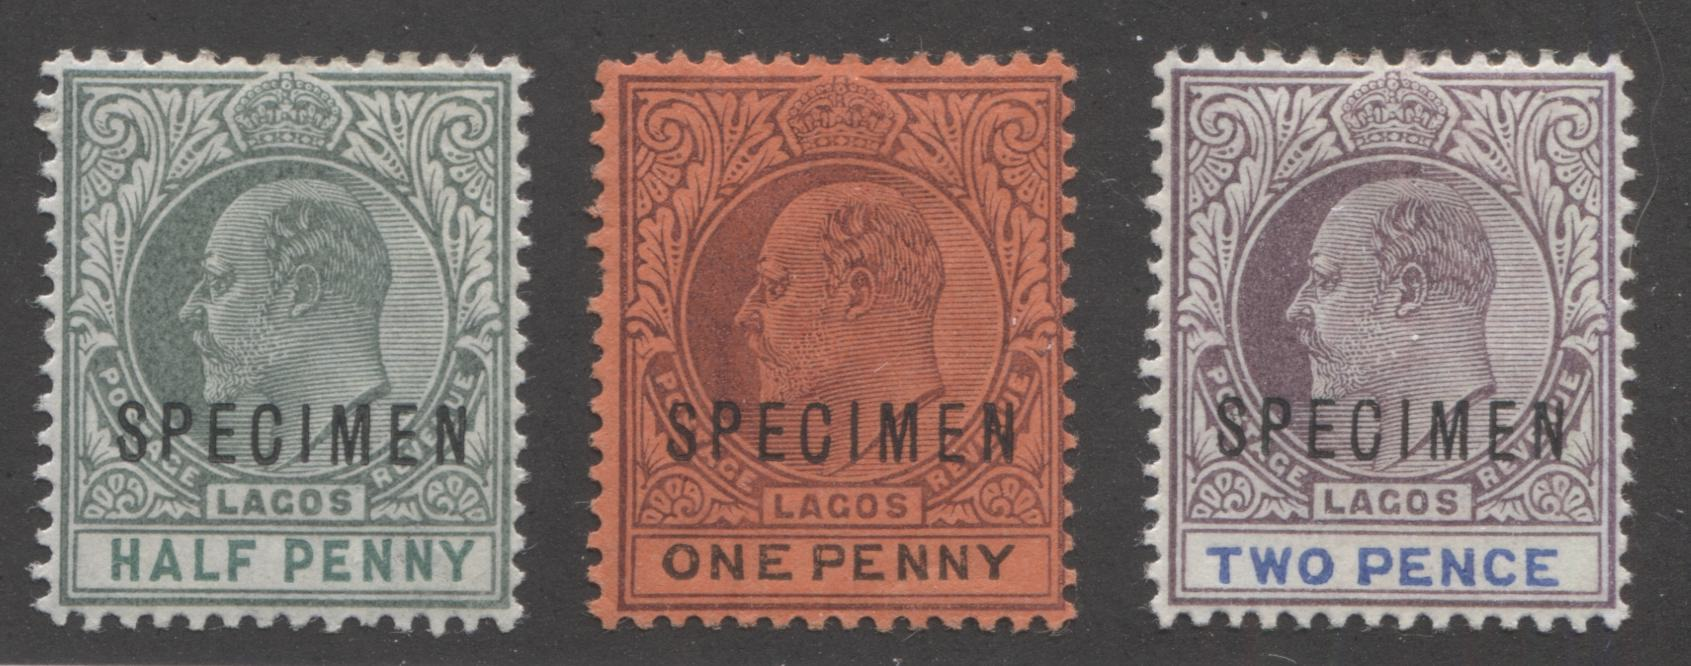 Lagos #44s-46s 1/2d-2d King Edward VII, 1903-1904 Single Crown CA Issue, VG and VF Mint Specimen Overprints Brixton Chrome